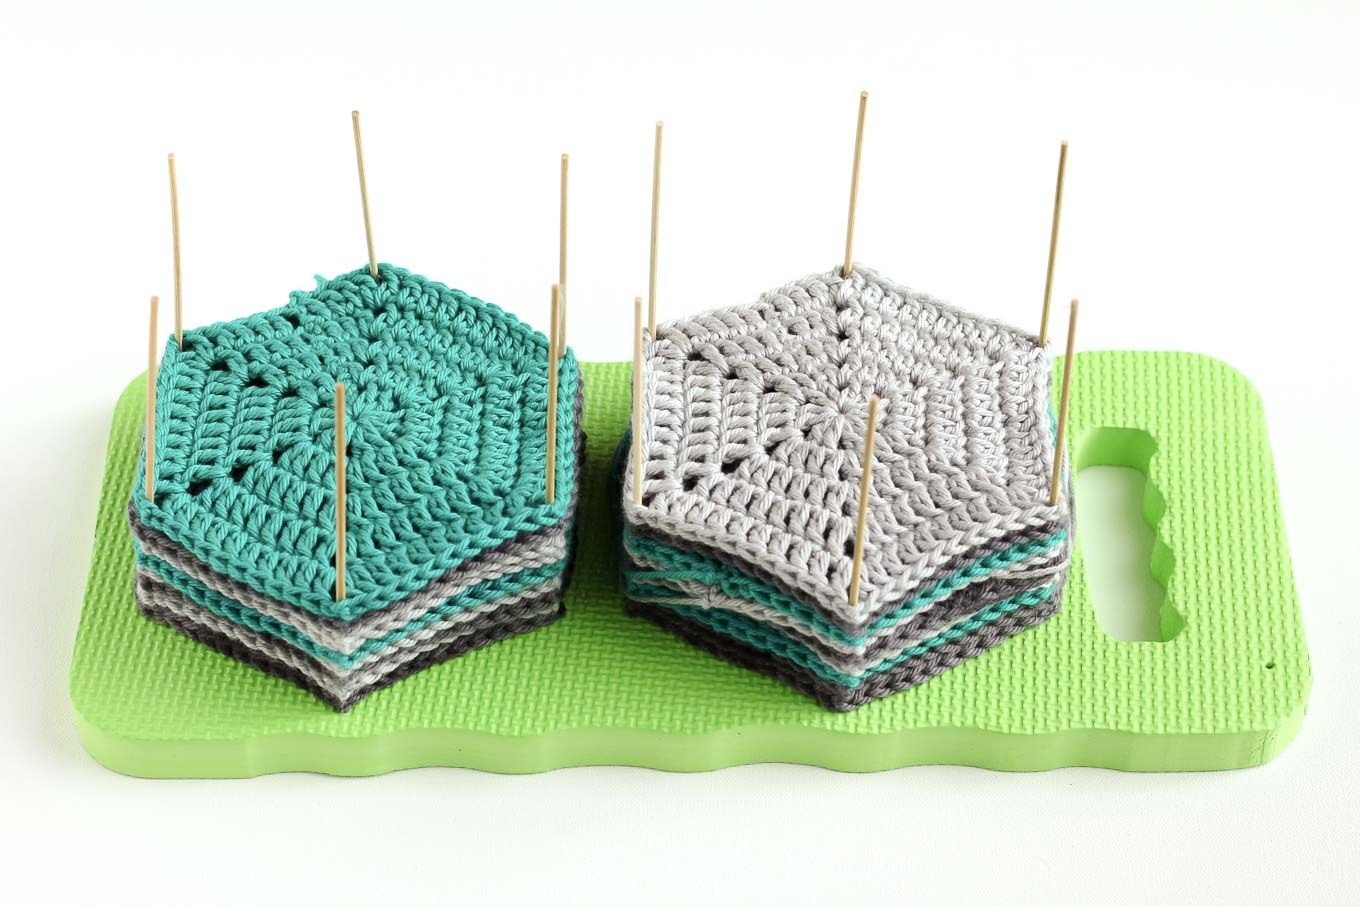 How To Block Crochet With Easy Diy Blocking Board Patterns Trippy Hippy Afghan Pattern Kingdom 1970318d3f576e30081bc61981ee26b8